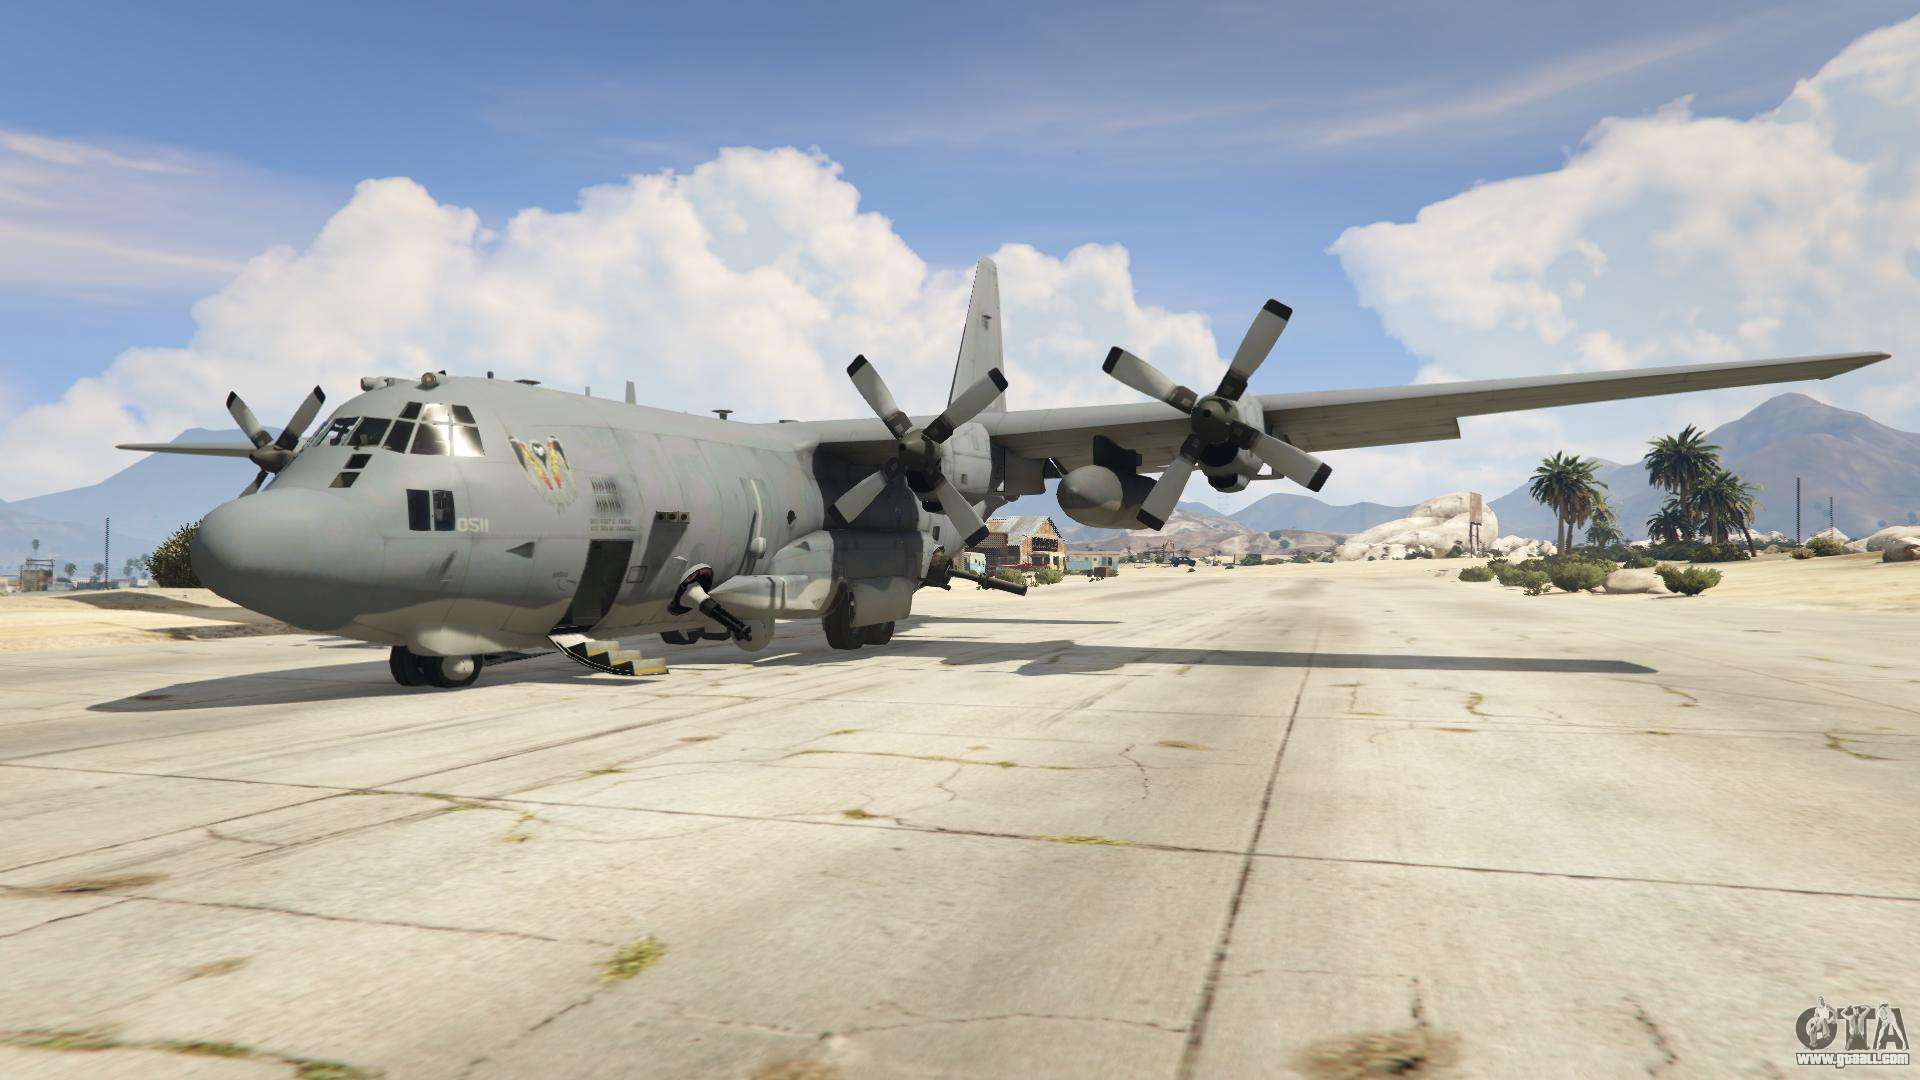 gta 5 army helicopter with 81087 Ac 130u Spooky Ii Gunship on 73412 The Il 76 V11 additionally Mh X Ghost Hawk likewise 27844 Benefactor Turreted Limo besides Ah 1z Viper   Helicopter Resources 388649633 furthermore Akula.